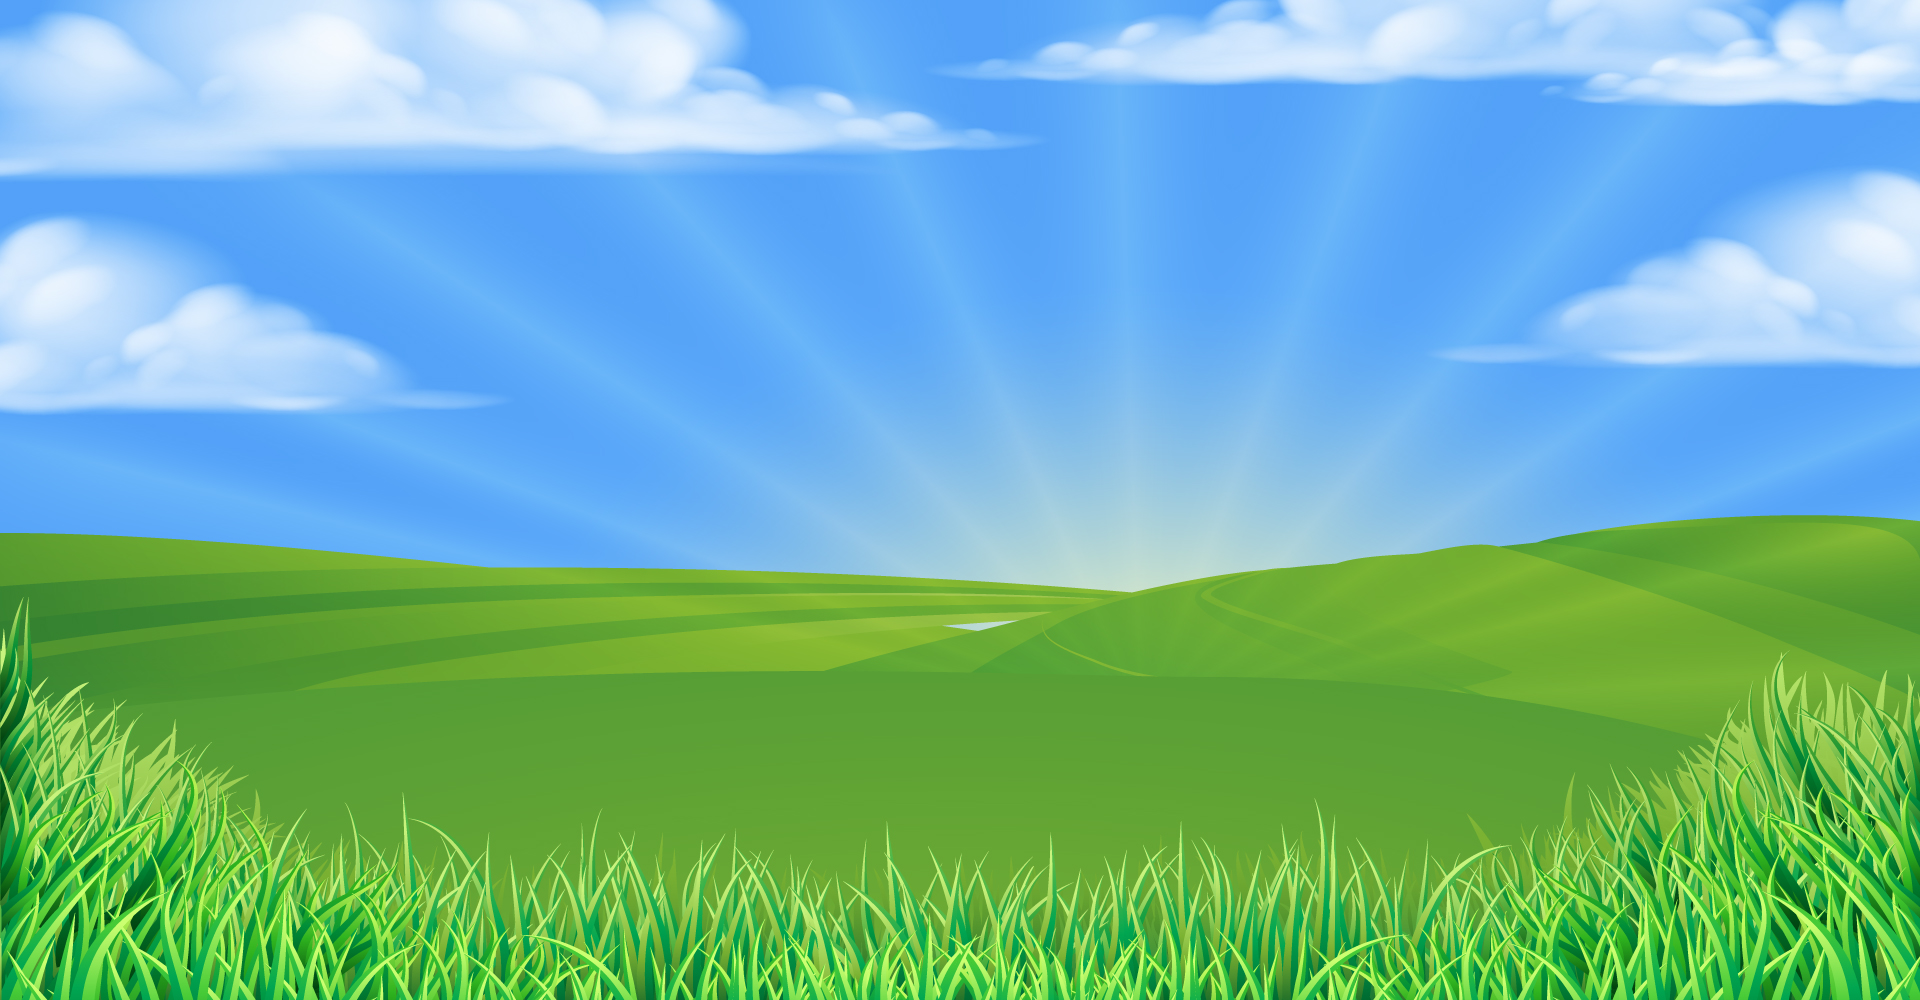 Grass and Sky background - Traveling Tykes Entertainment Rental